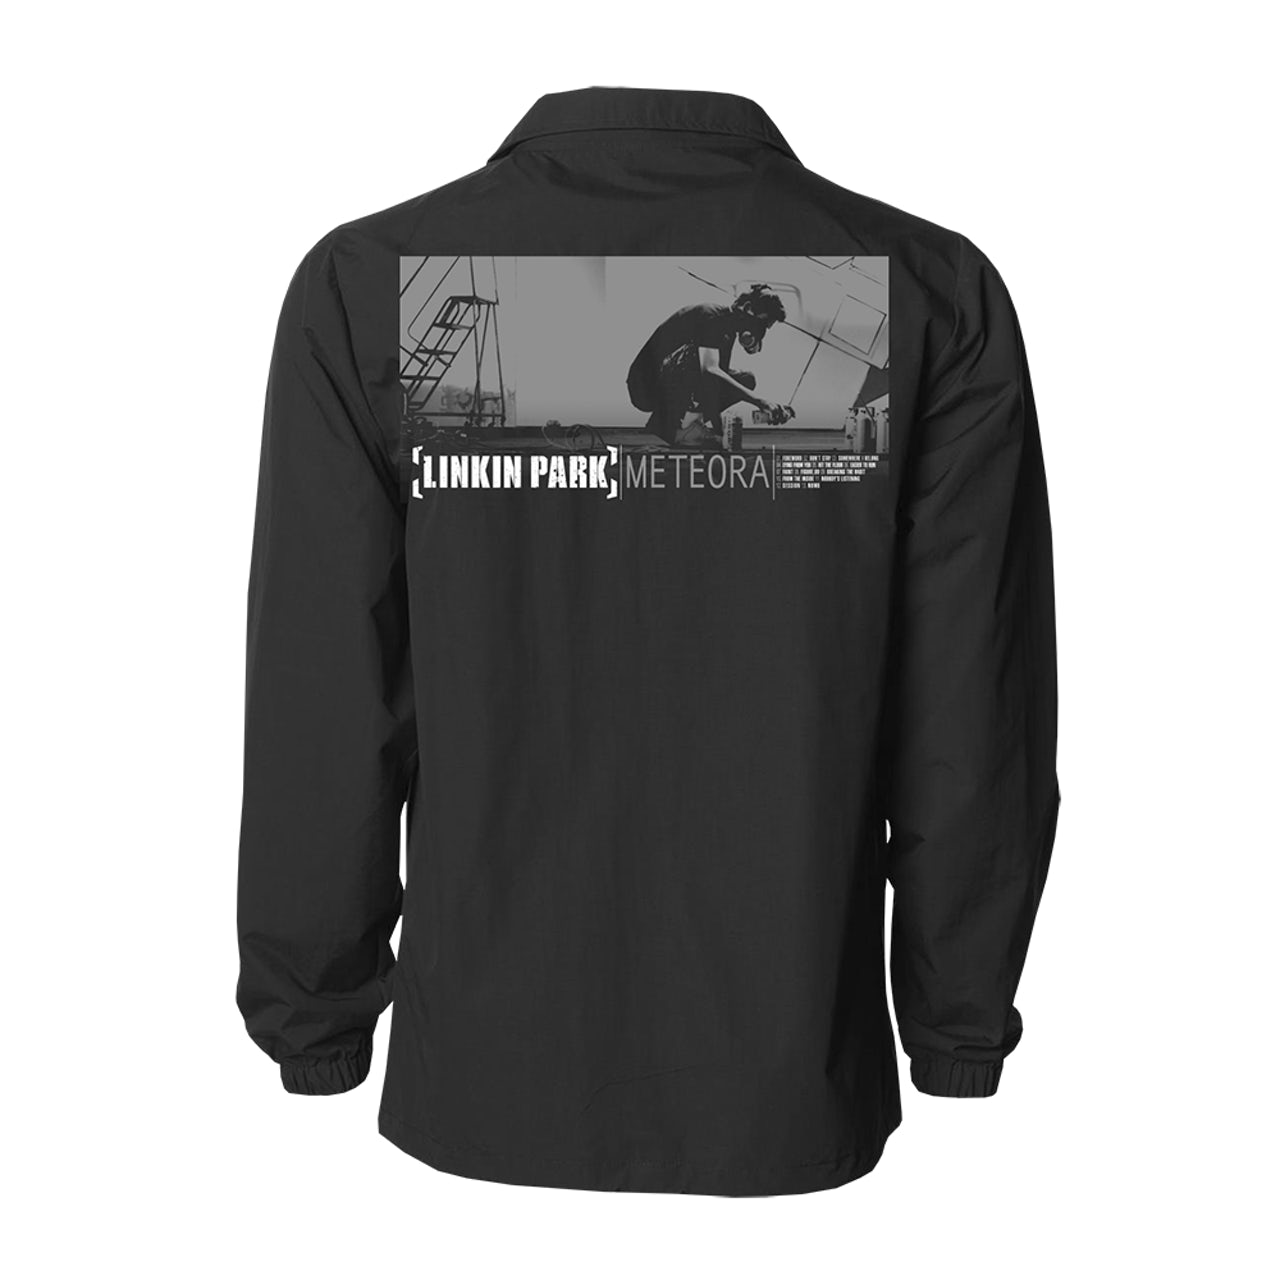 Linkin Park Meteora Windbreaker Jacket